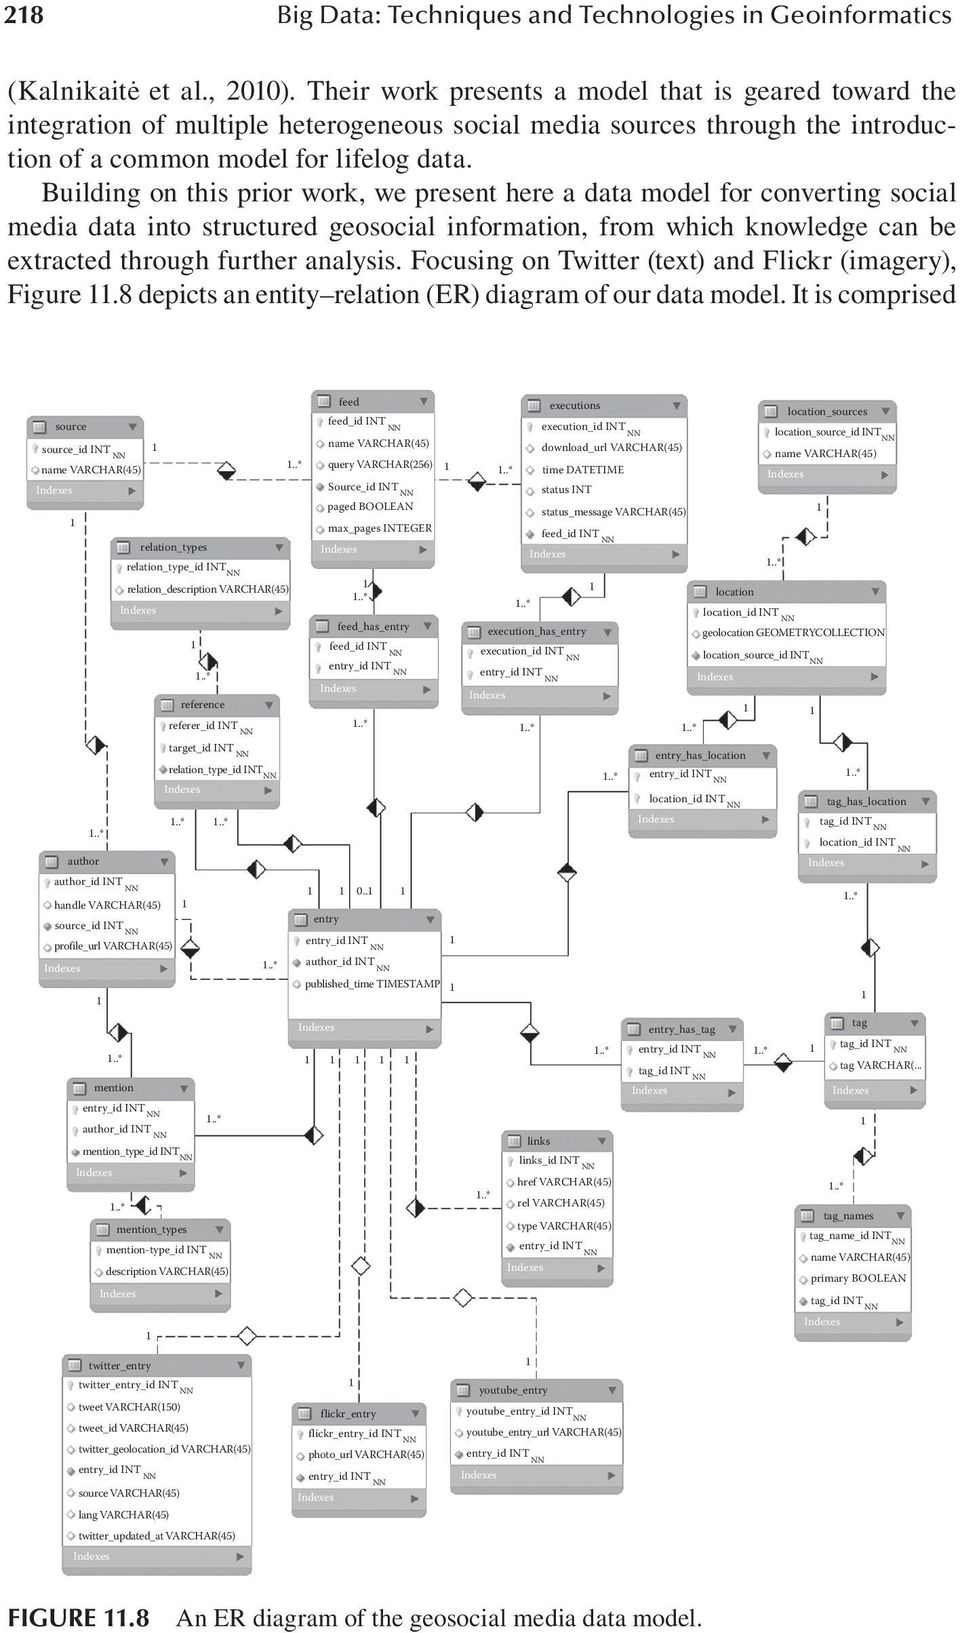 Building on this prior work, we present here a data model for converting social media data into structured geosocial information, from which knowledge can be extracted through further analysis.